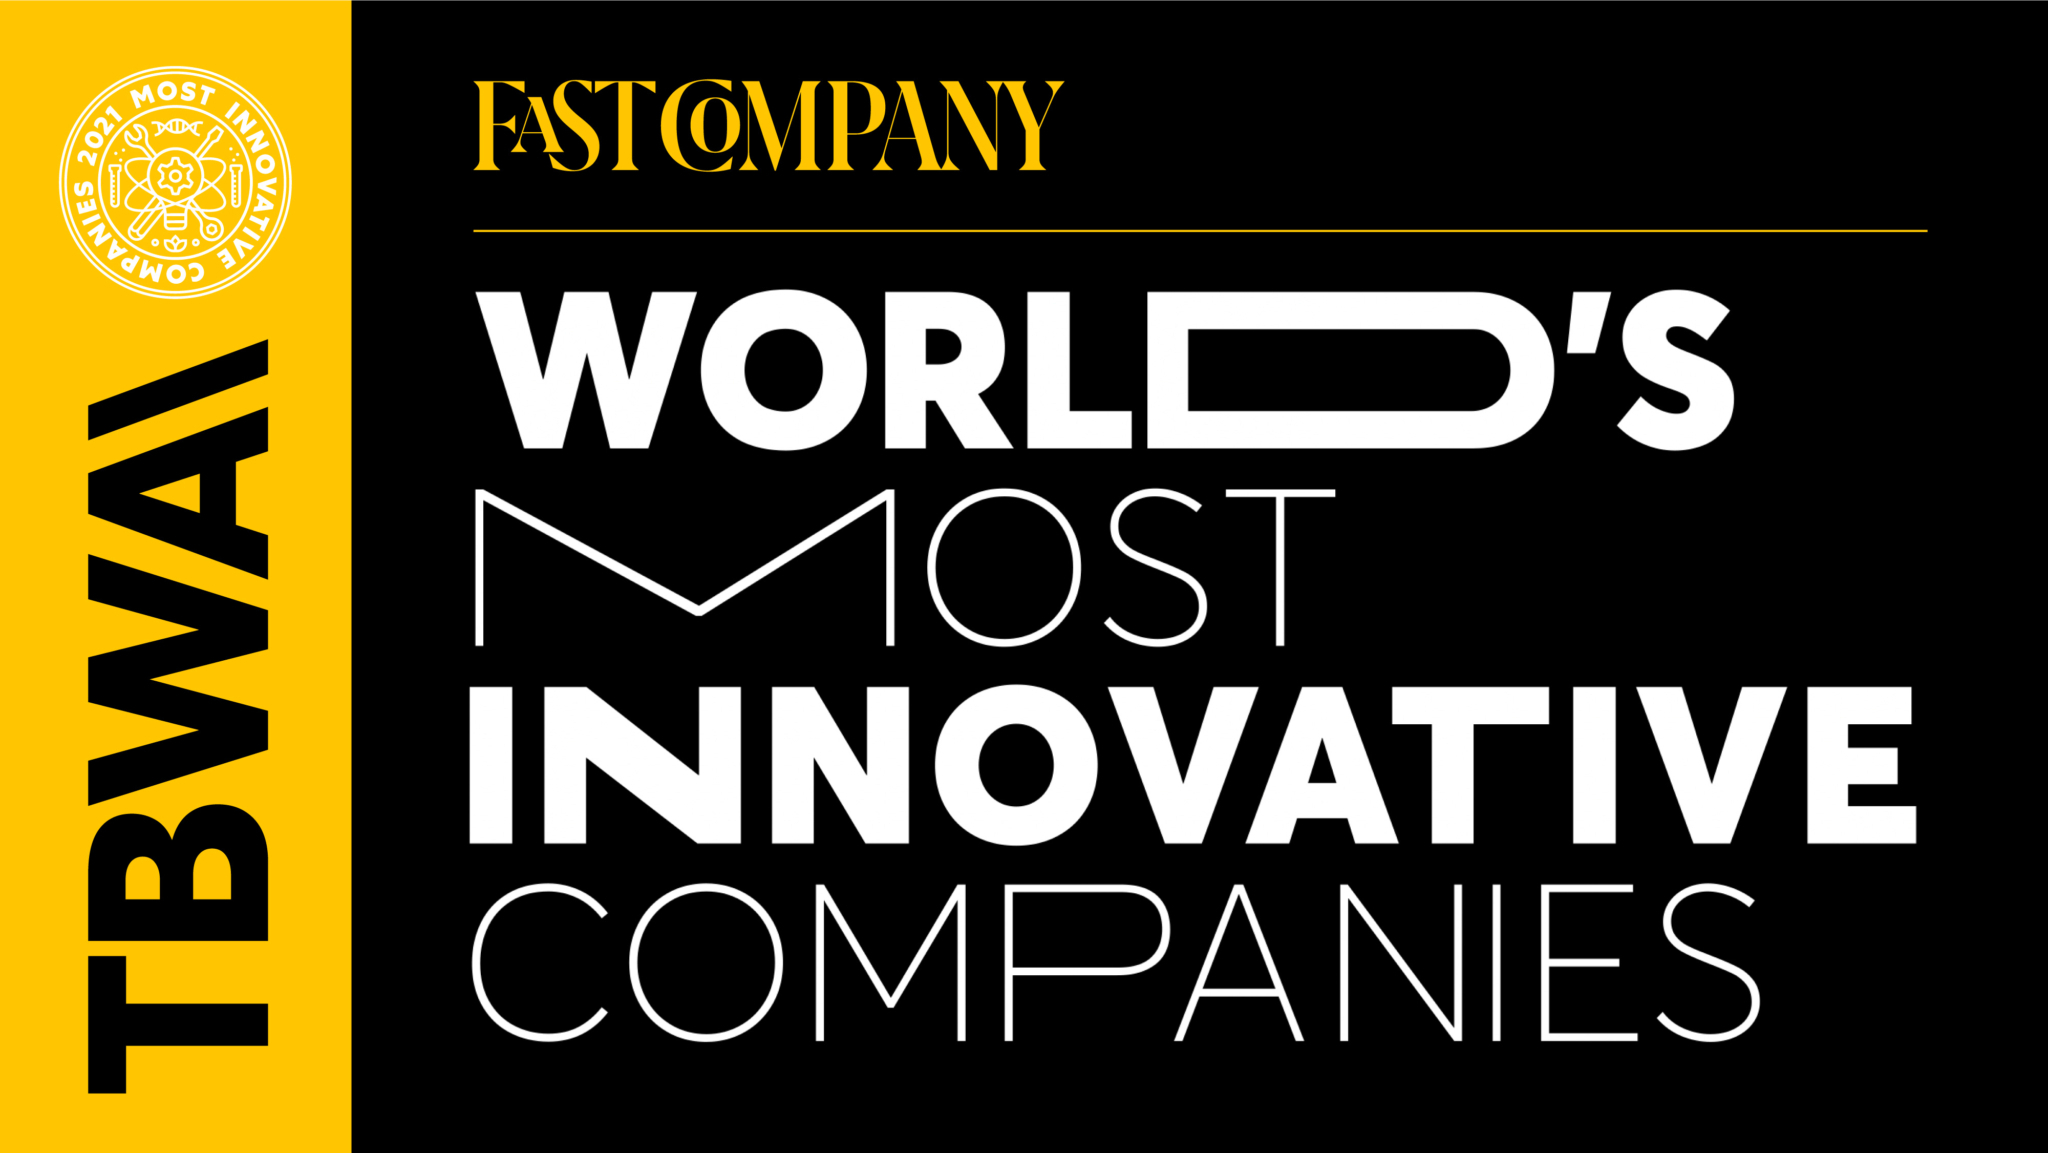 TBWA has been named to Fast Company's list of the World's Most Innovative Companies for 2021